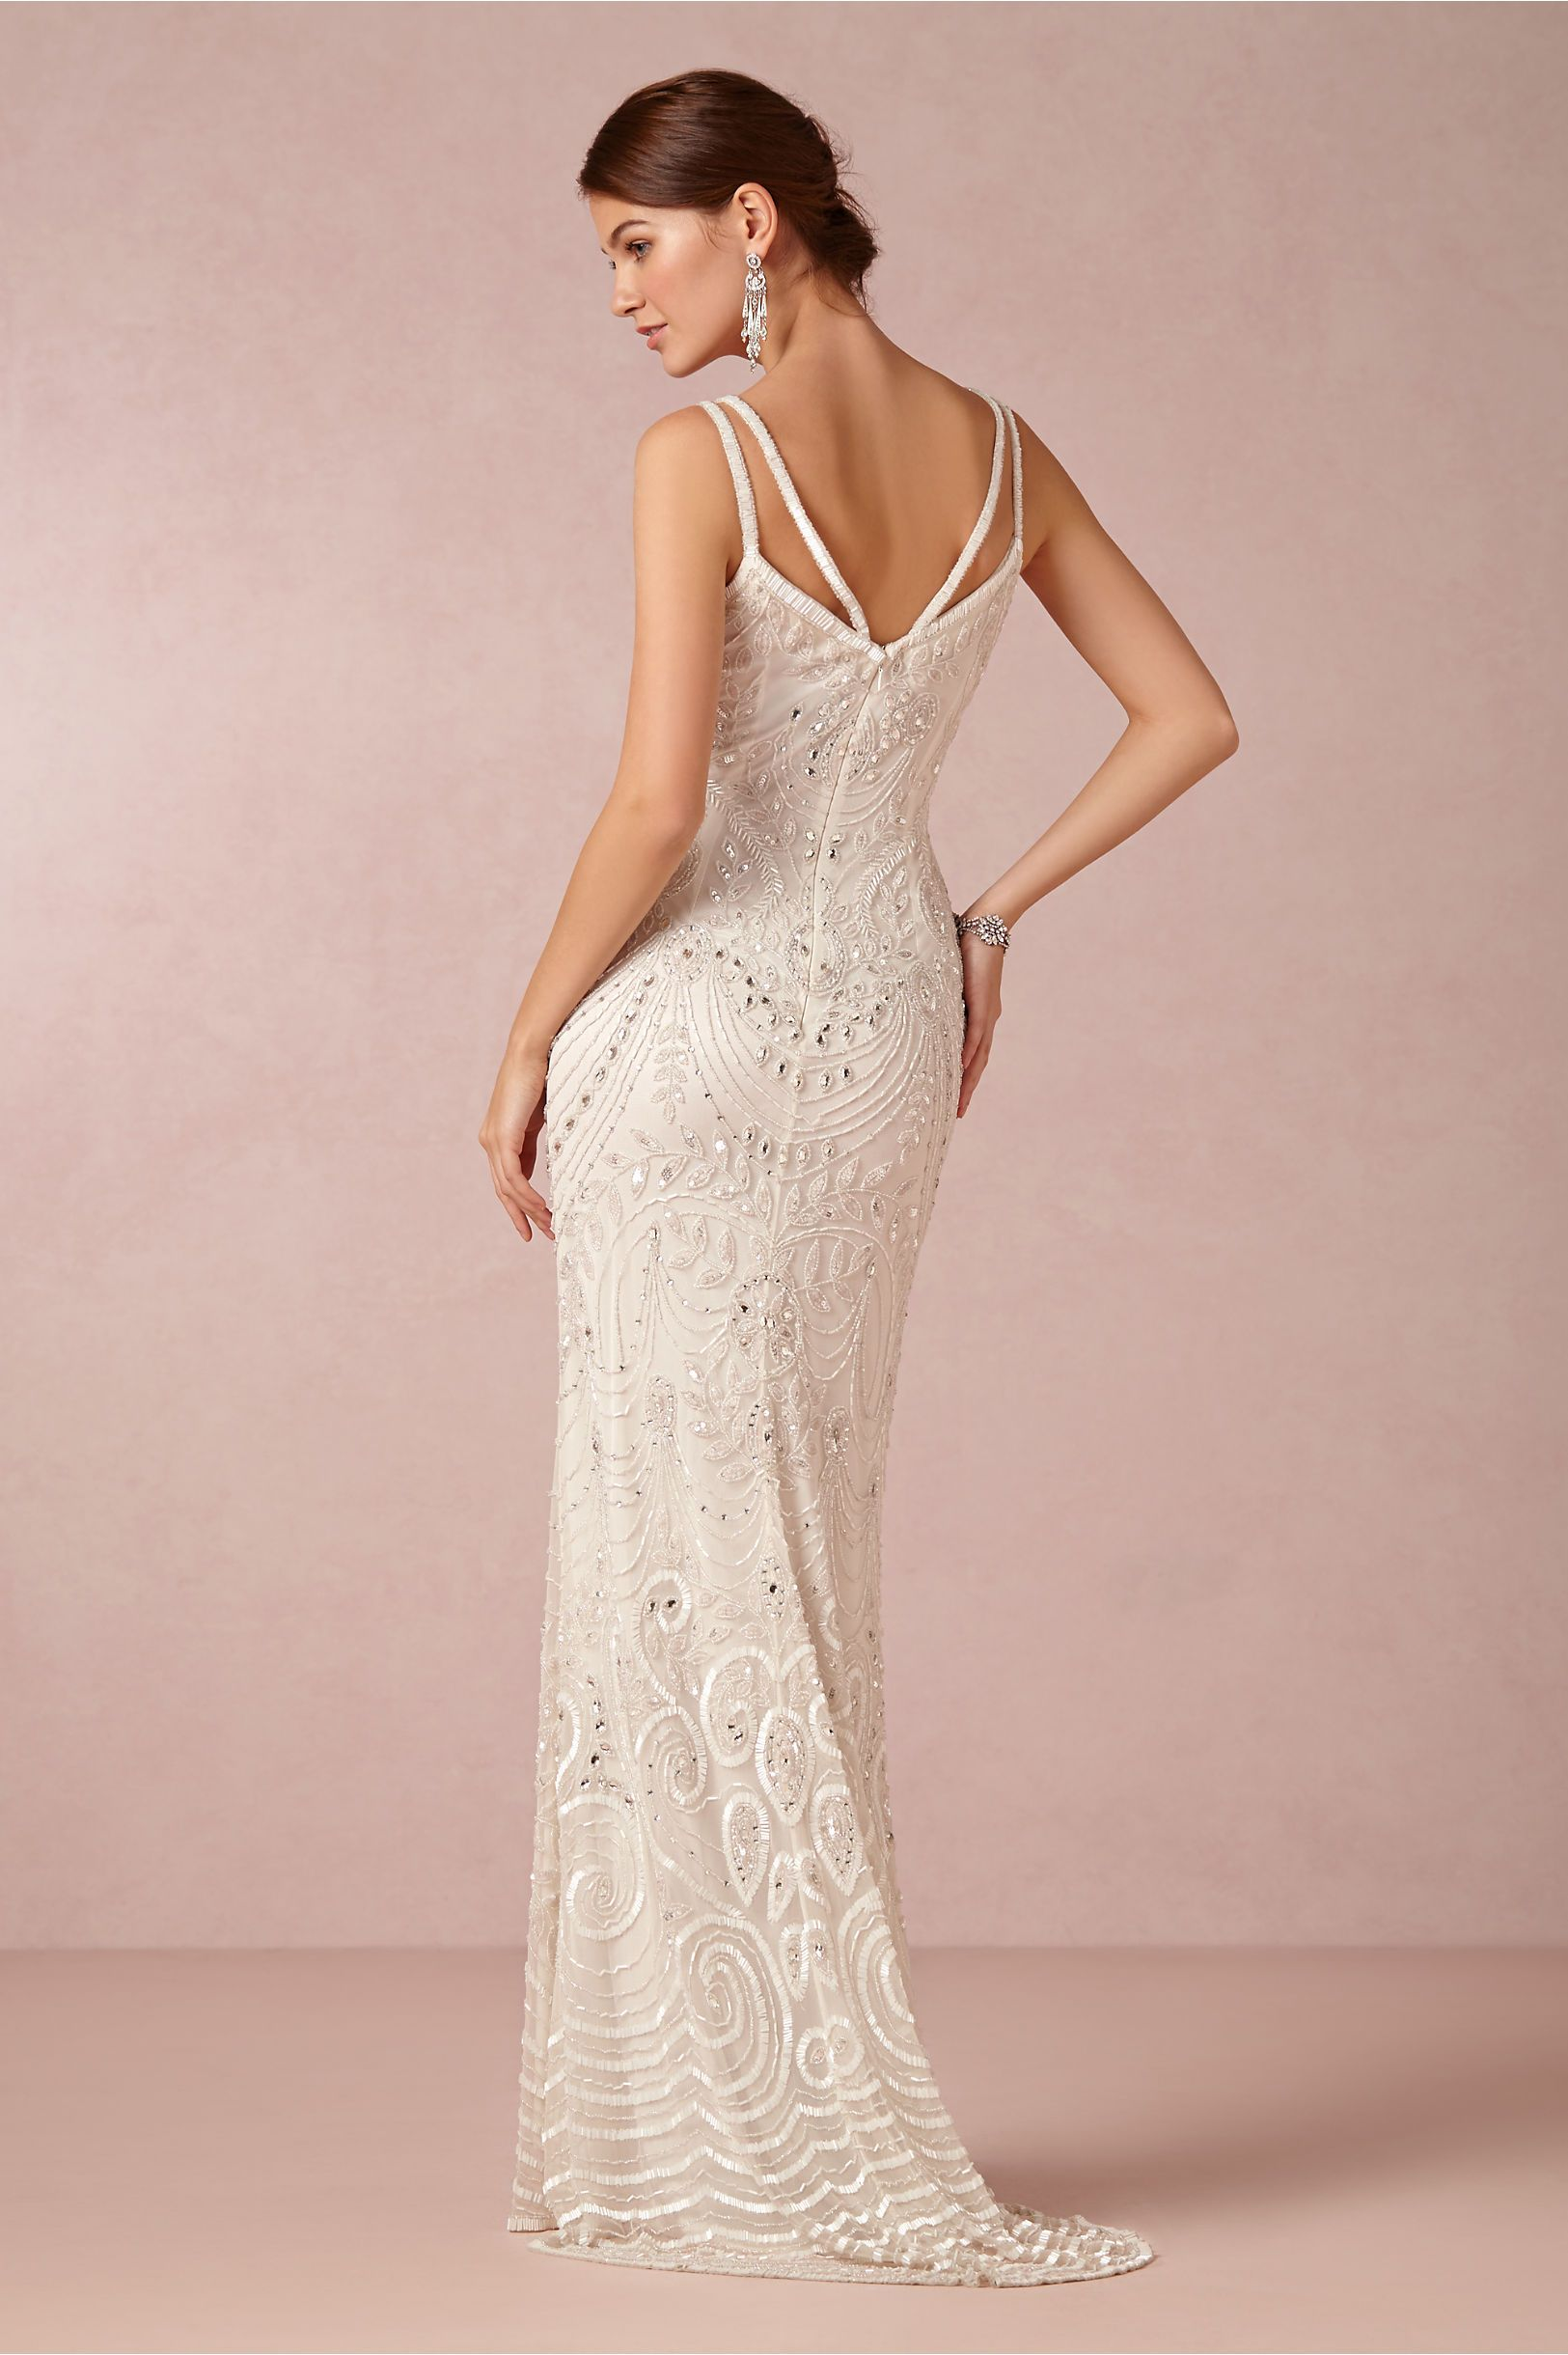 Elsa Gown/ Wedding Dress - Anthropologie - Look at how those lines ...